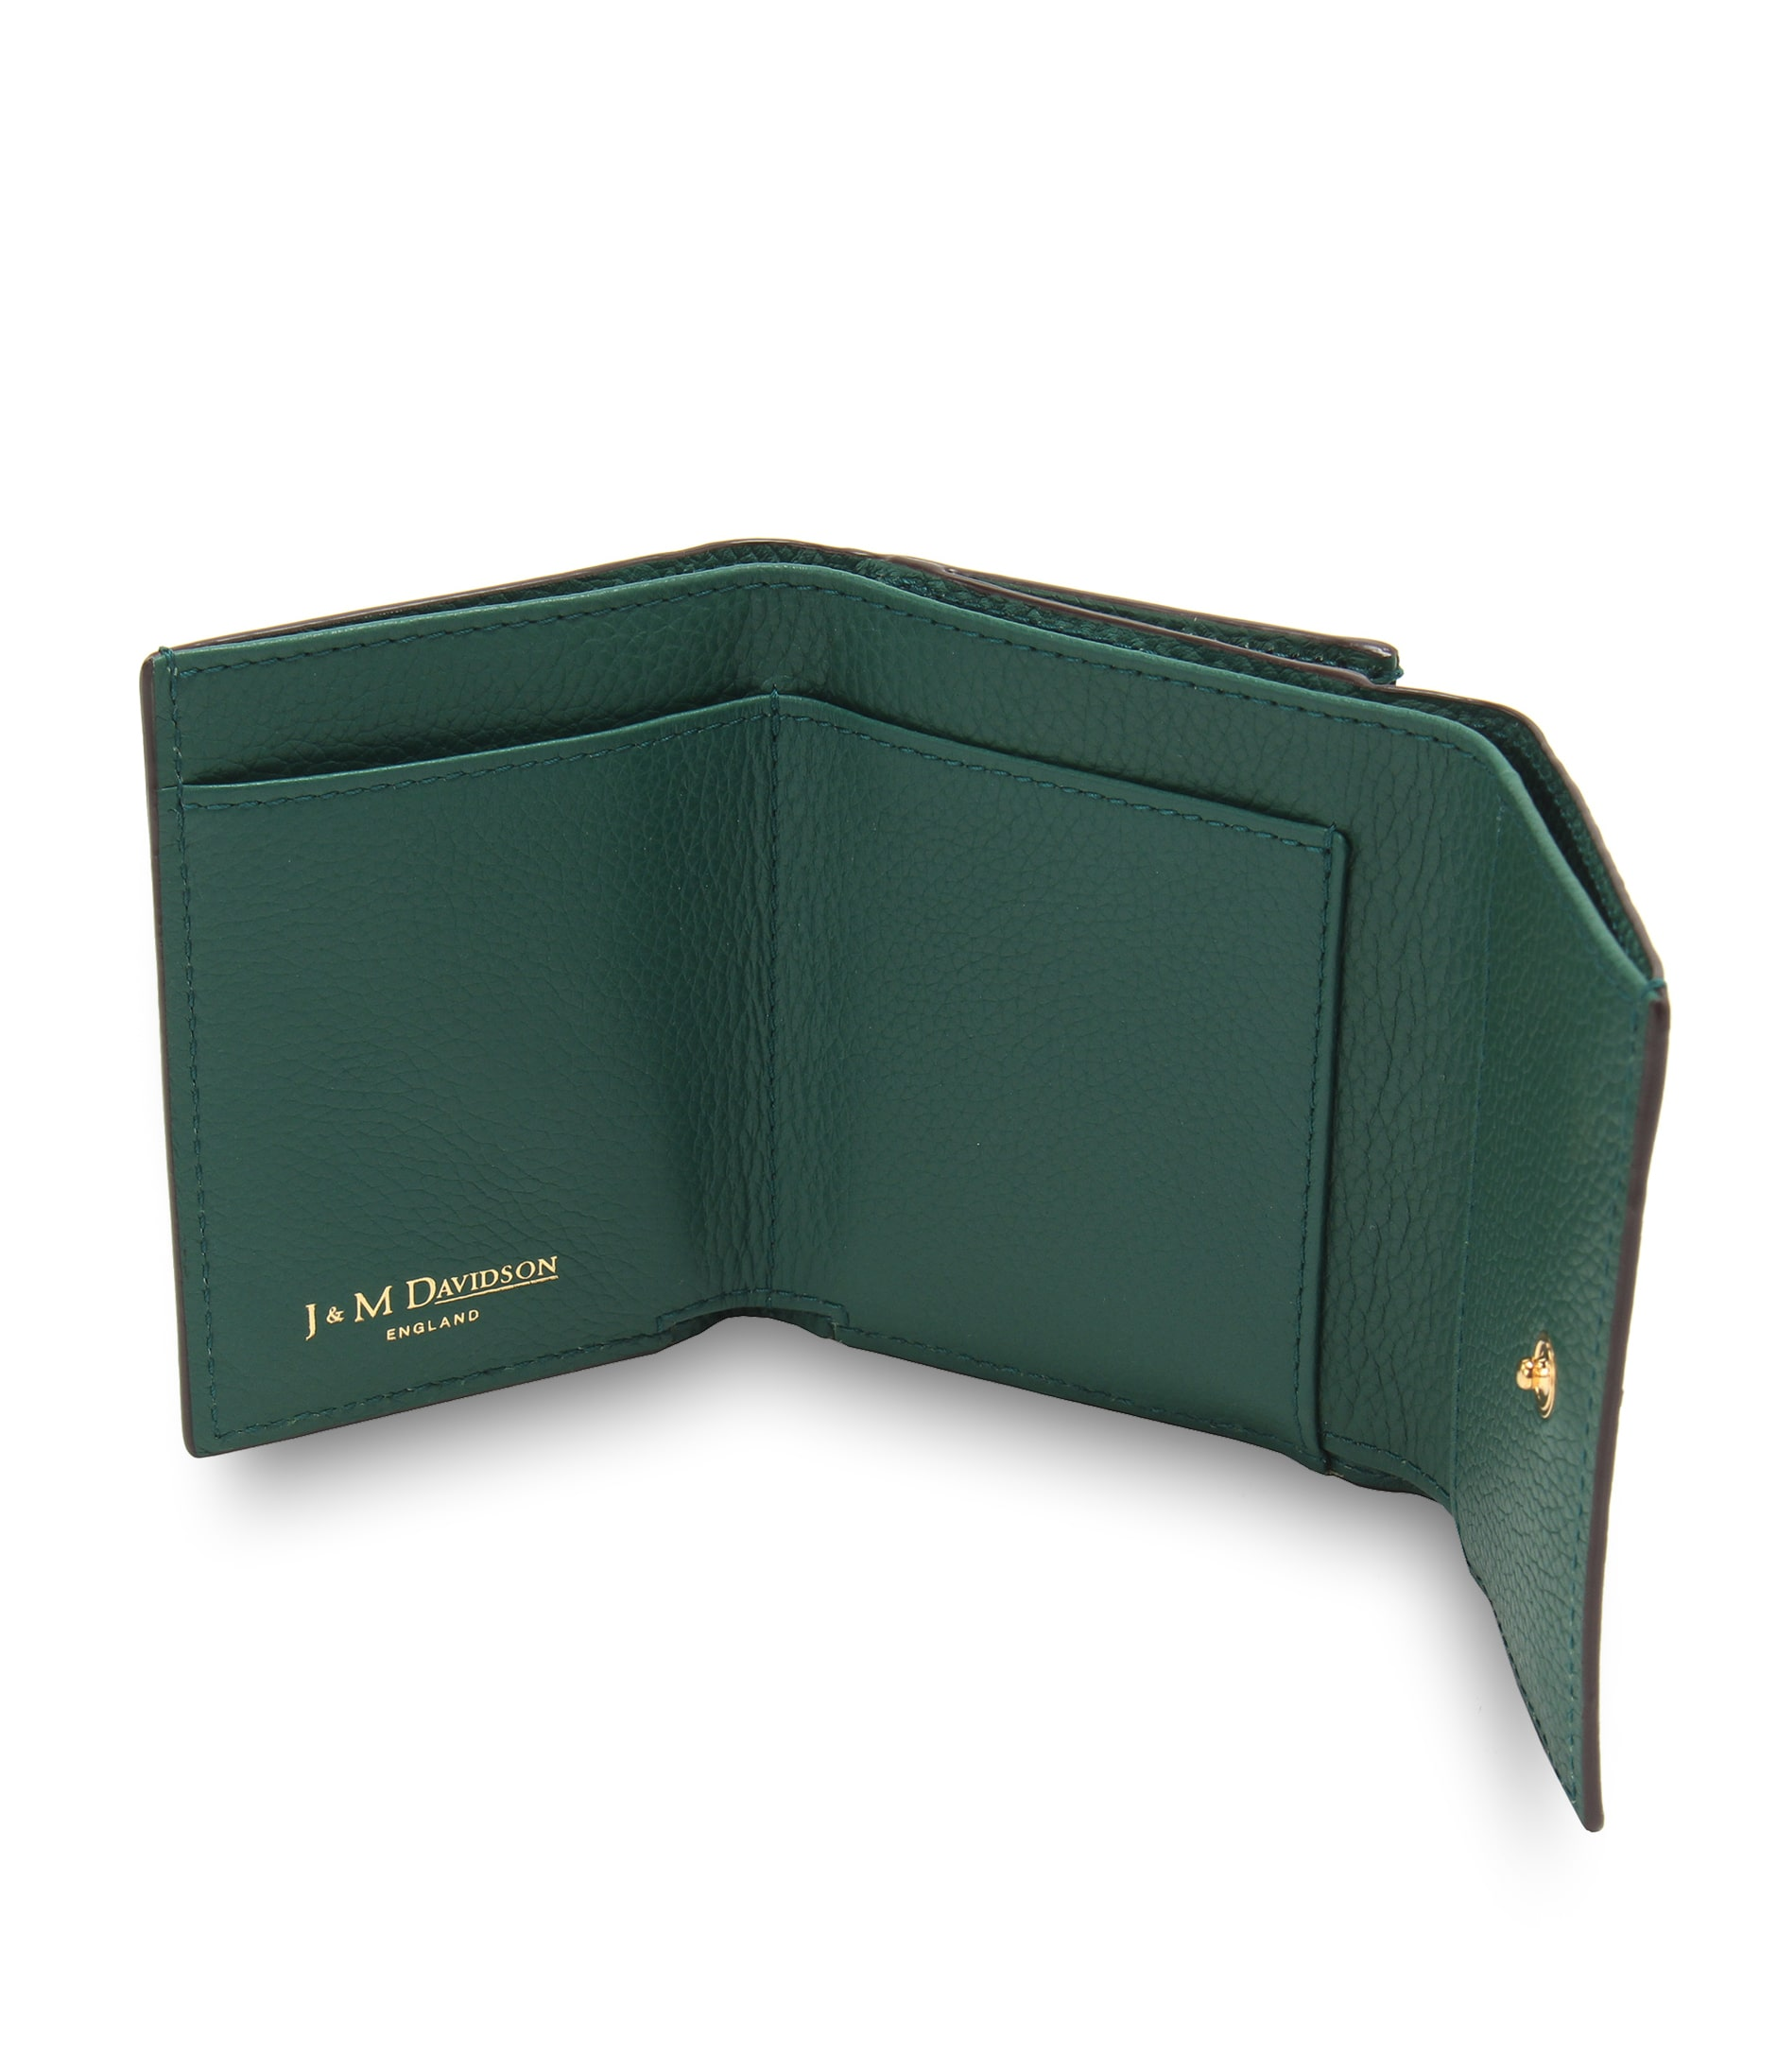 TWO FOLD WALLET 詳細画像 AVOCADO GREEN 3